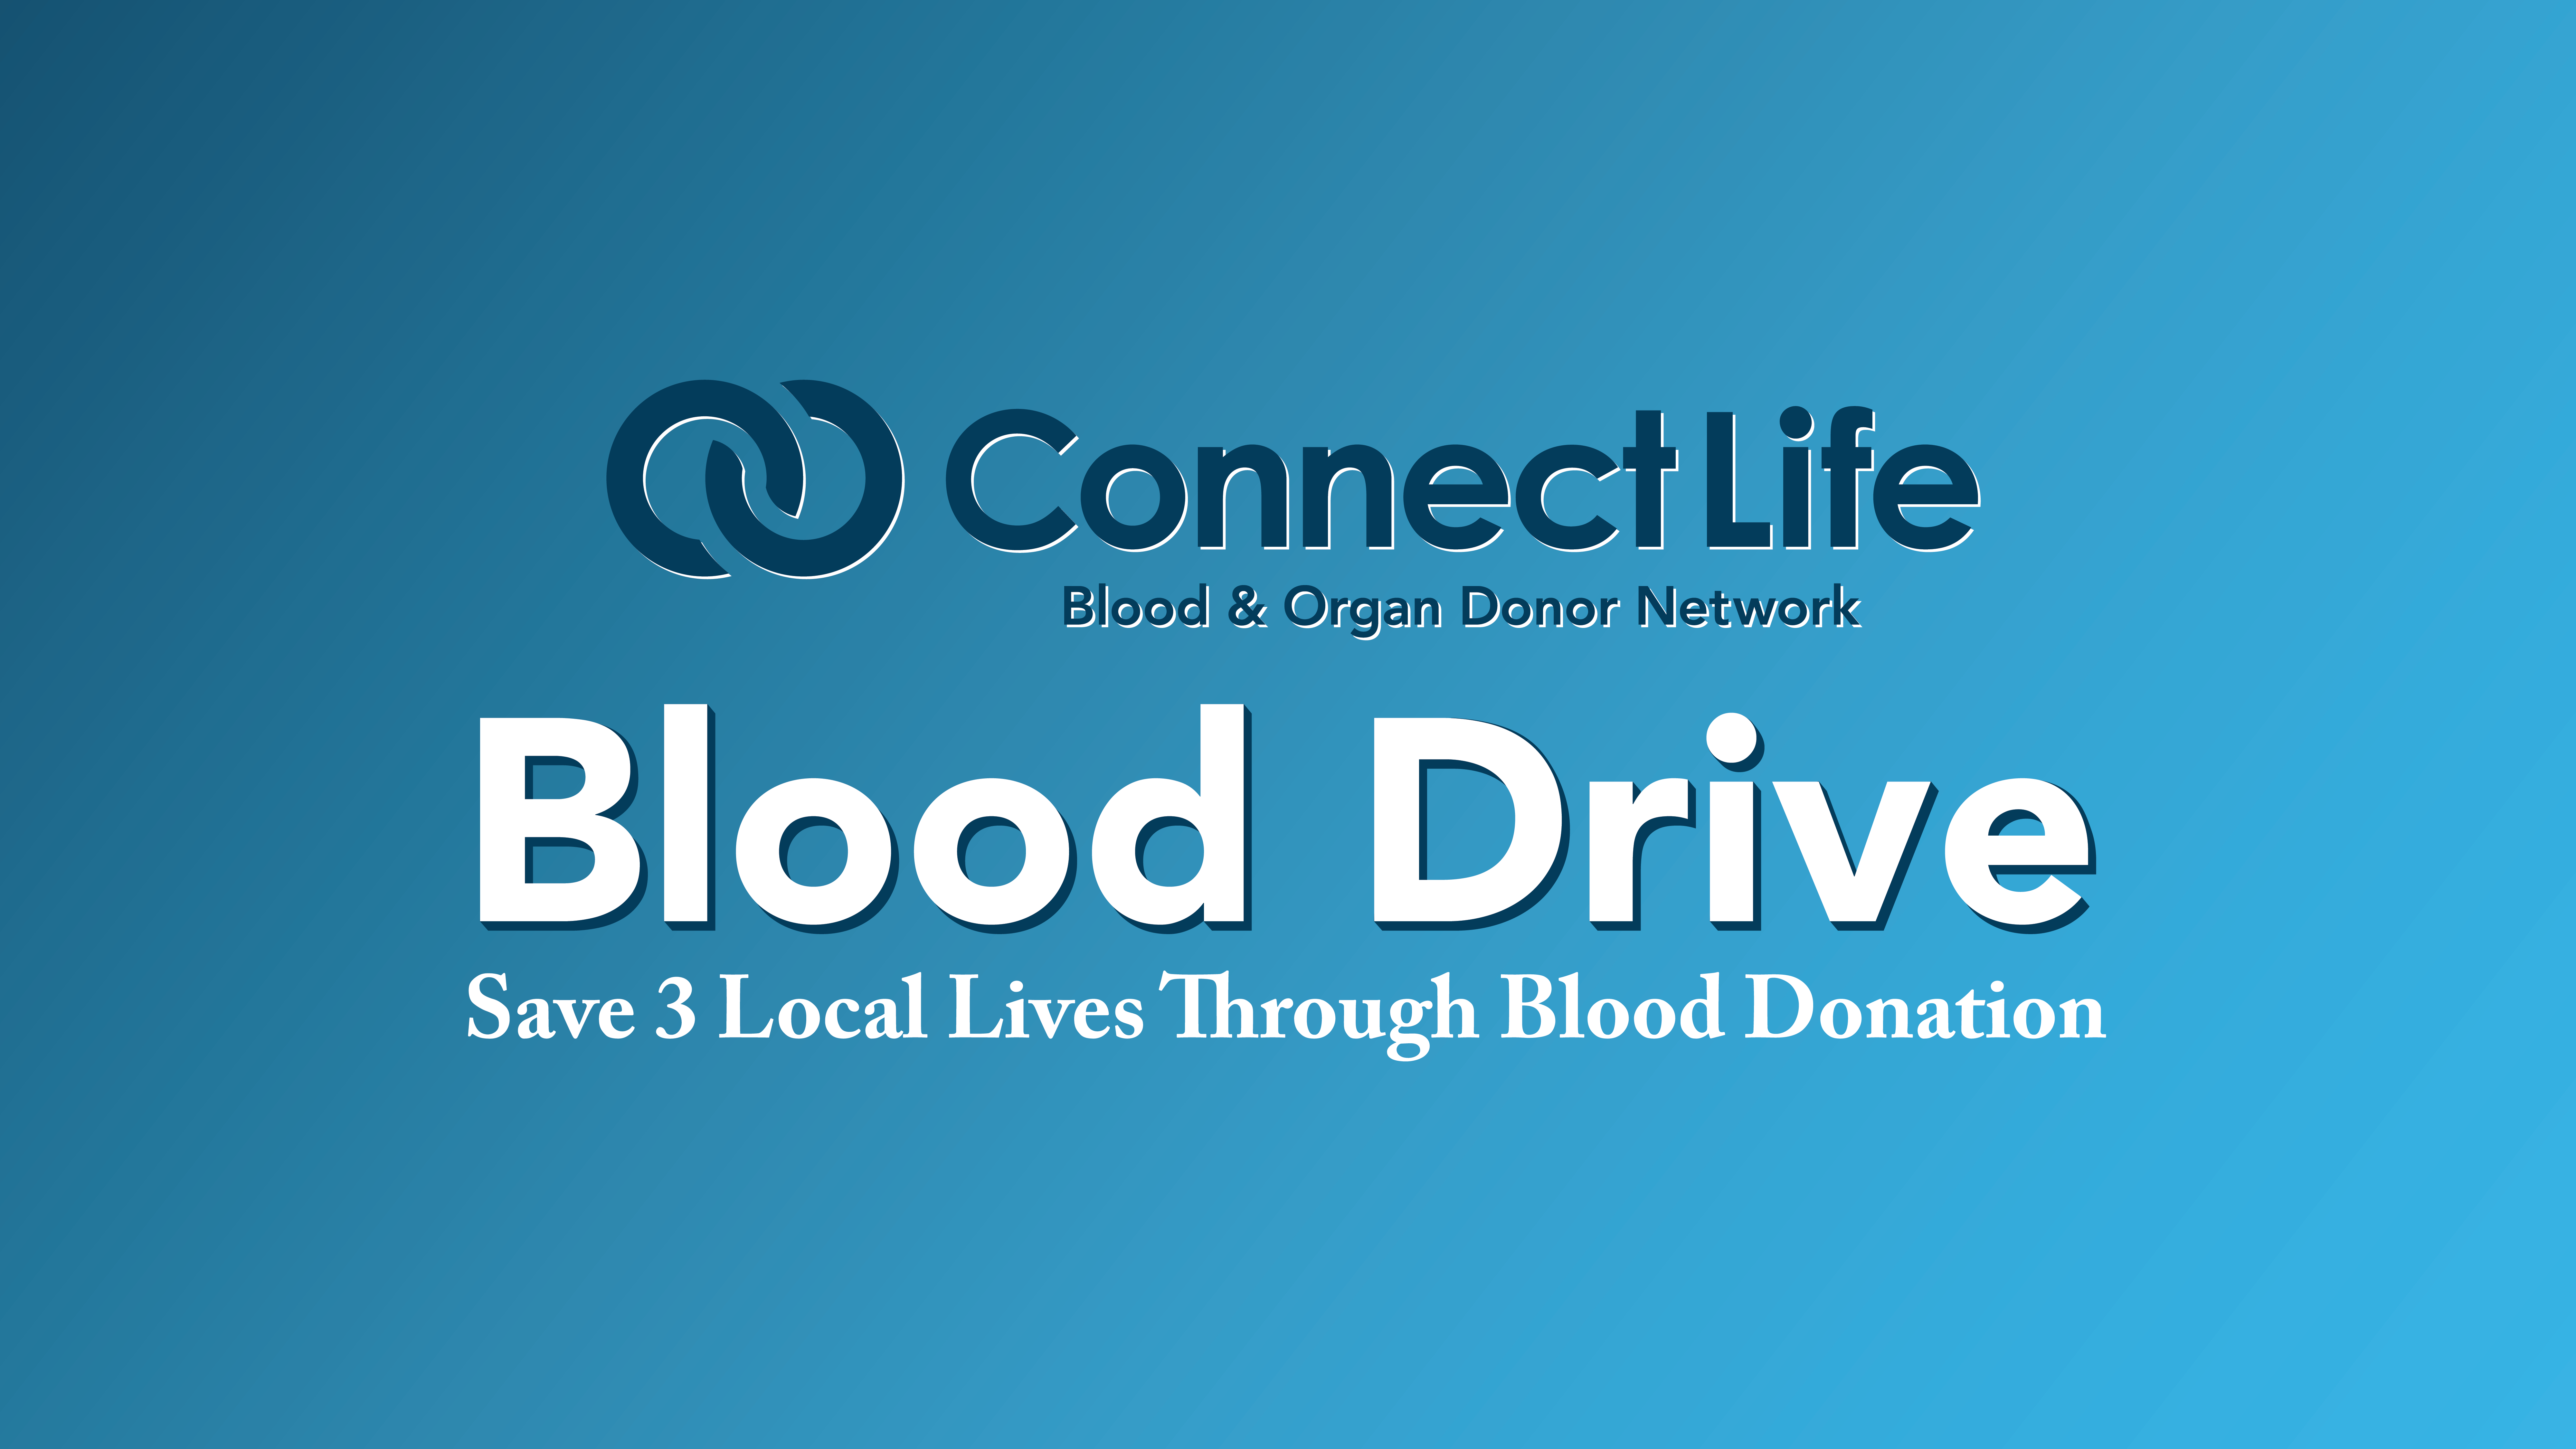 ConnectLife Logo Blood Drive Save 3 Local Lives Through Blood Donation